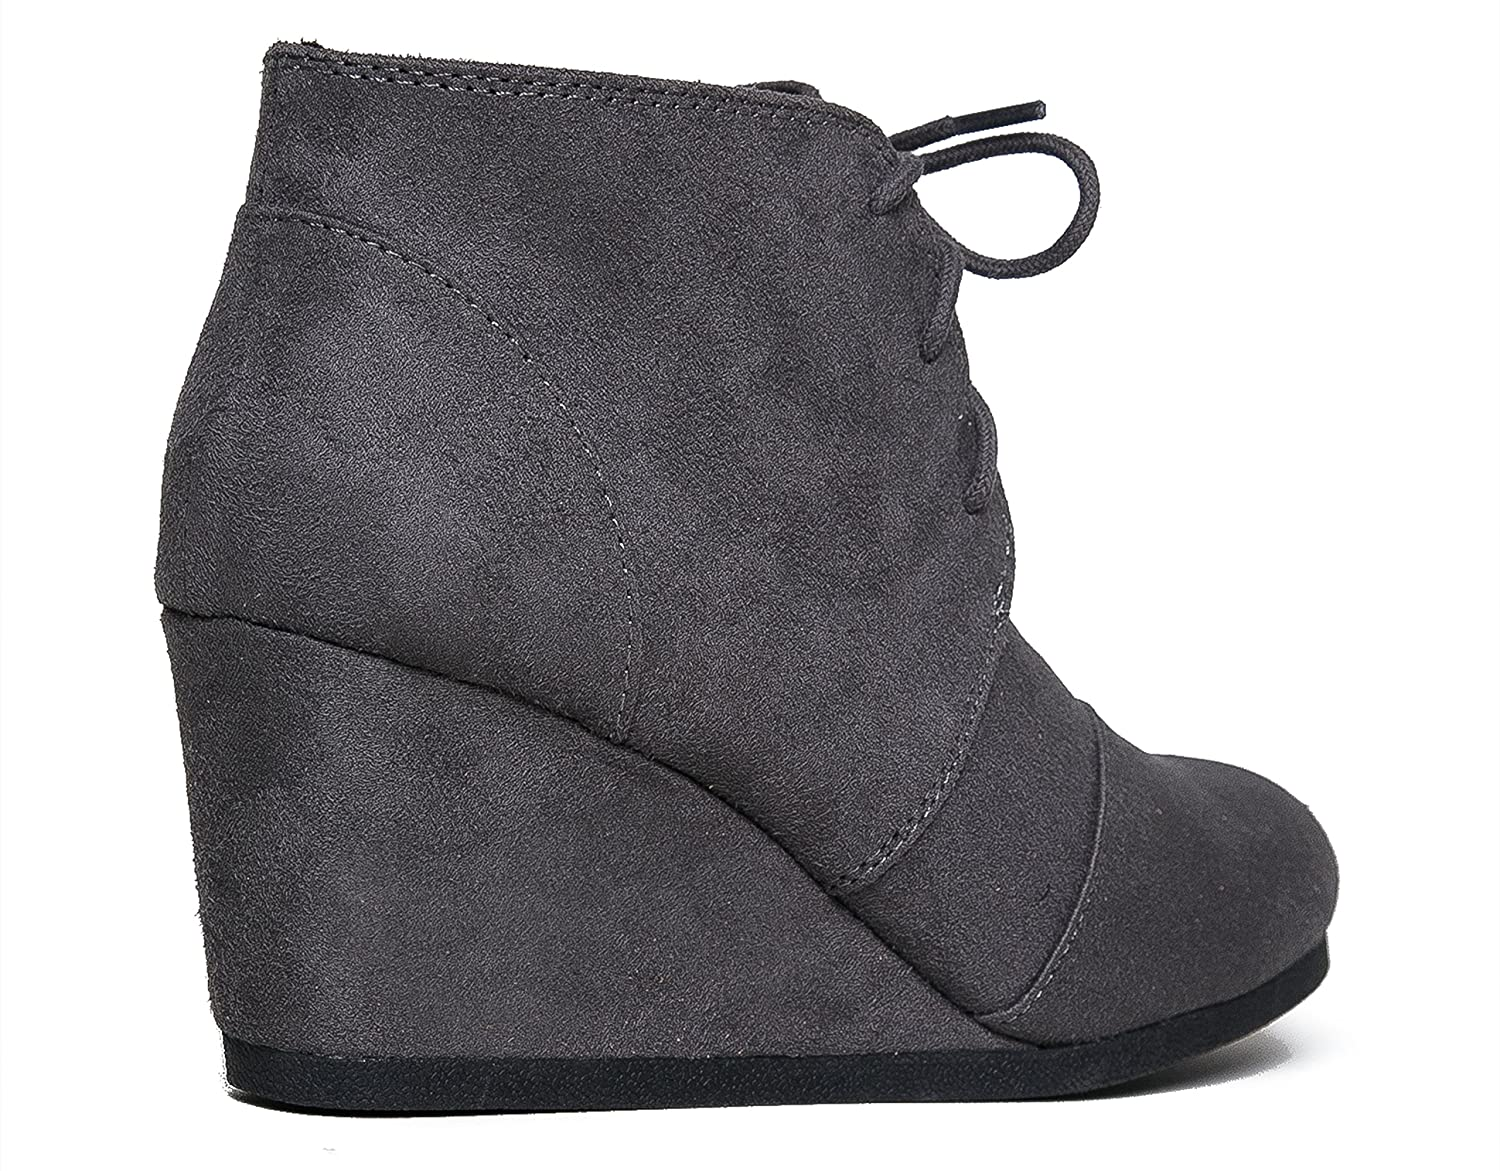 a43920b647e15 Amazon.com   J. Adams Roxy Wedge Booties - Casual Lace Up Low Heel Closed  Toe Ankle Boot   Ankle & Bootie